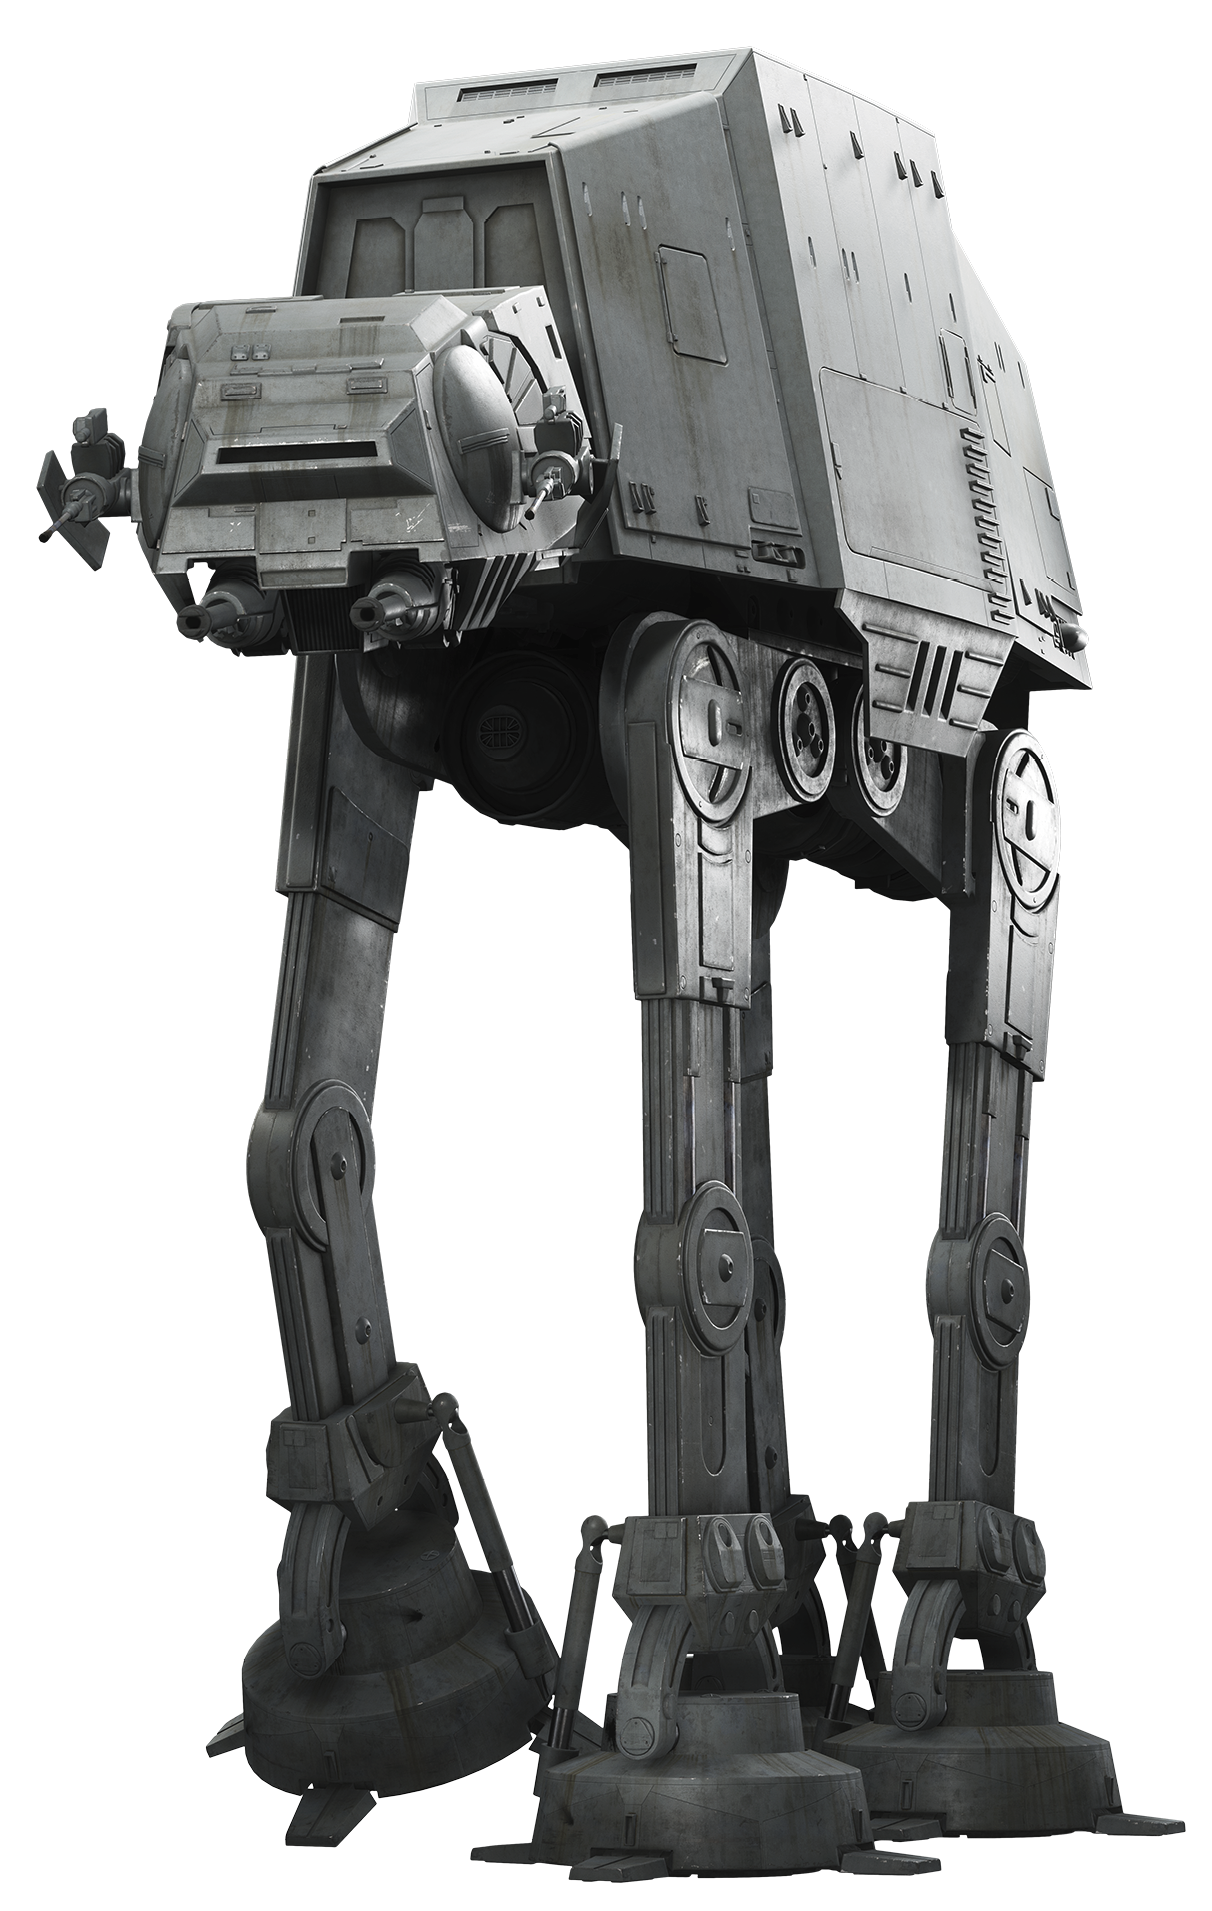 Http Vignette1 Wikia Nocookie Net Starwars Images 0 01 At At Dice Png Revision Latest Cb 20161022005731 Star Wars Ships Star Wars Vehicles Star Wars Rpg